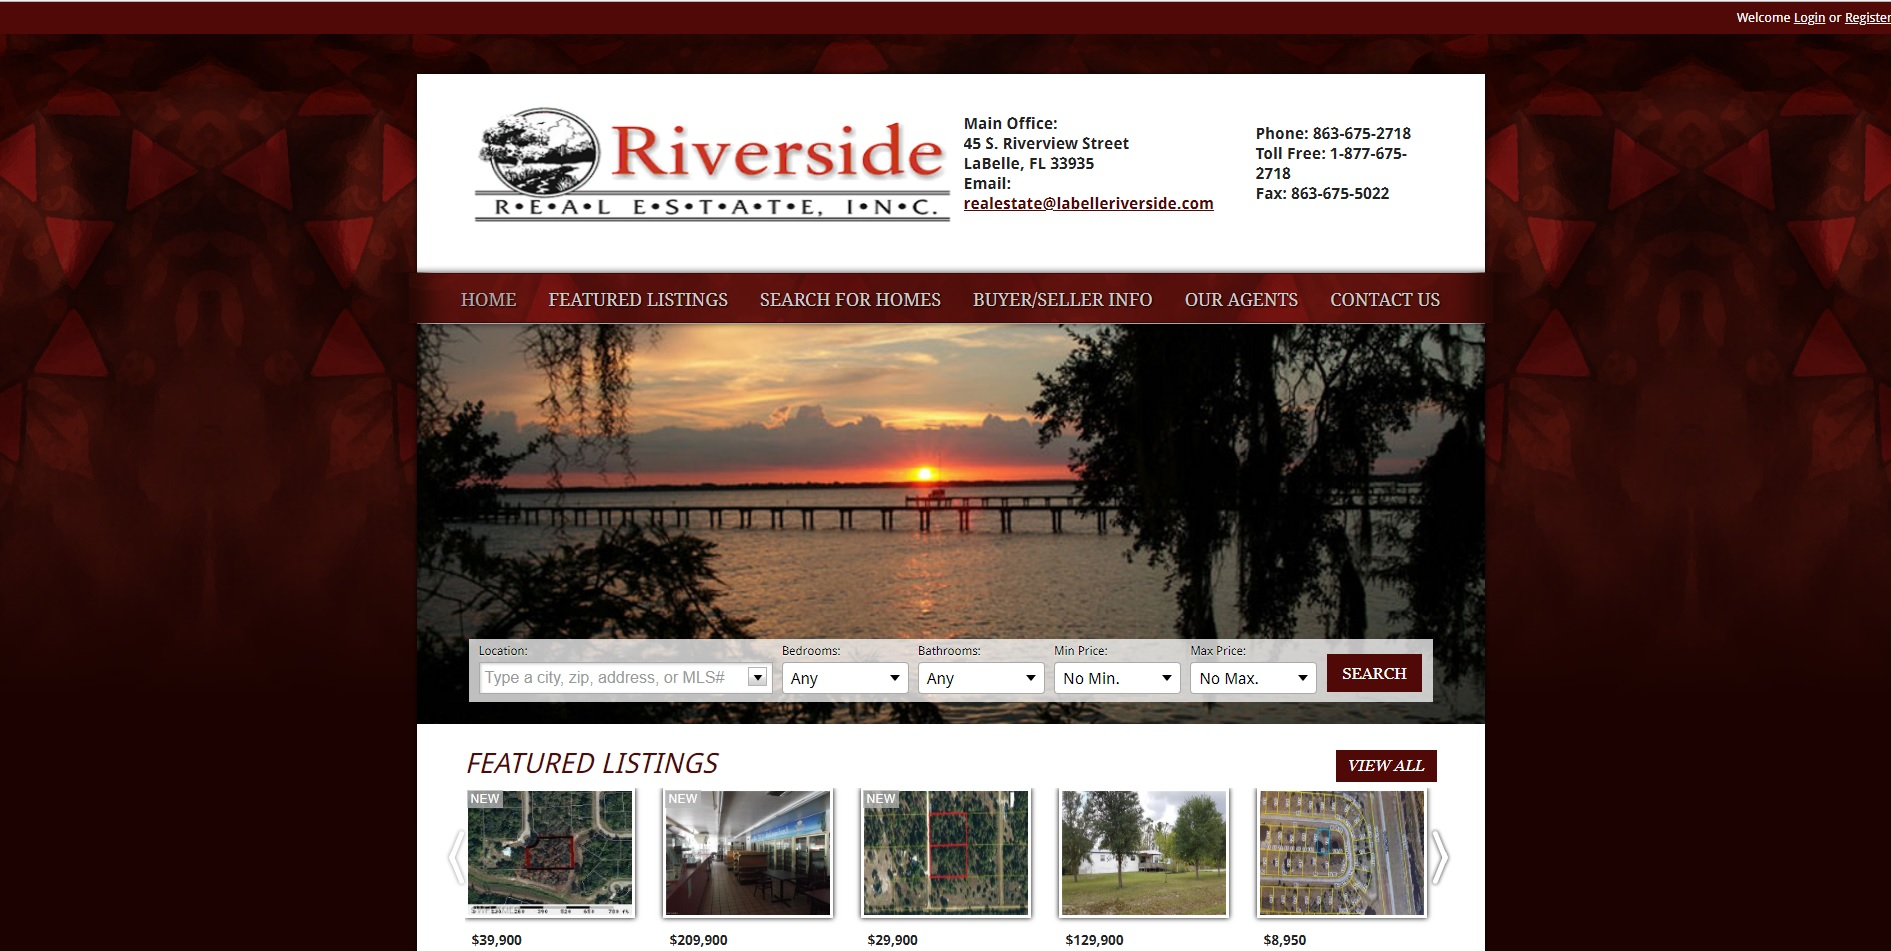 Riverside Real Estate Inc